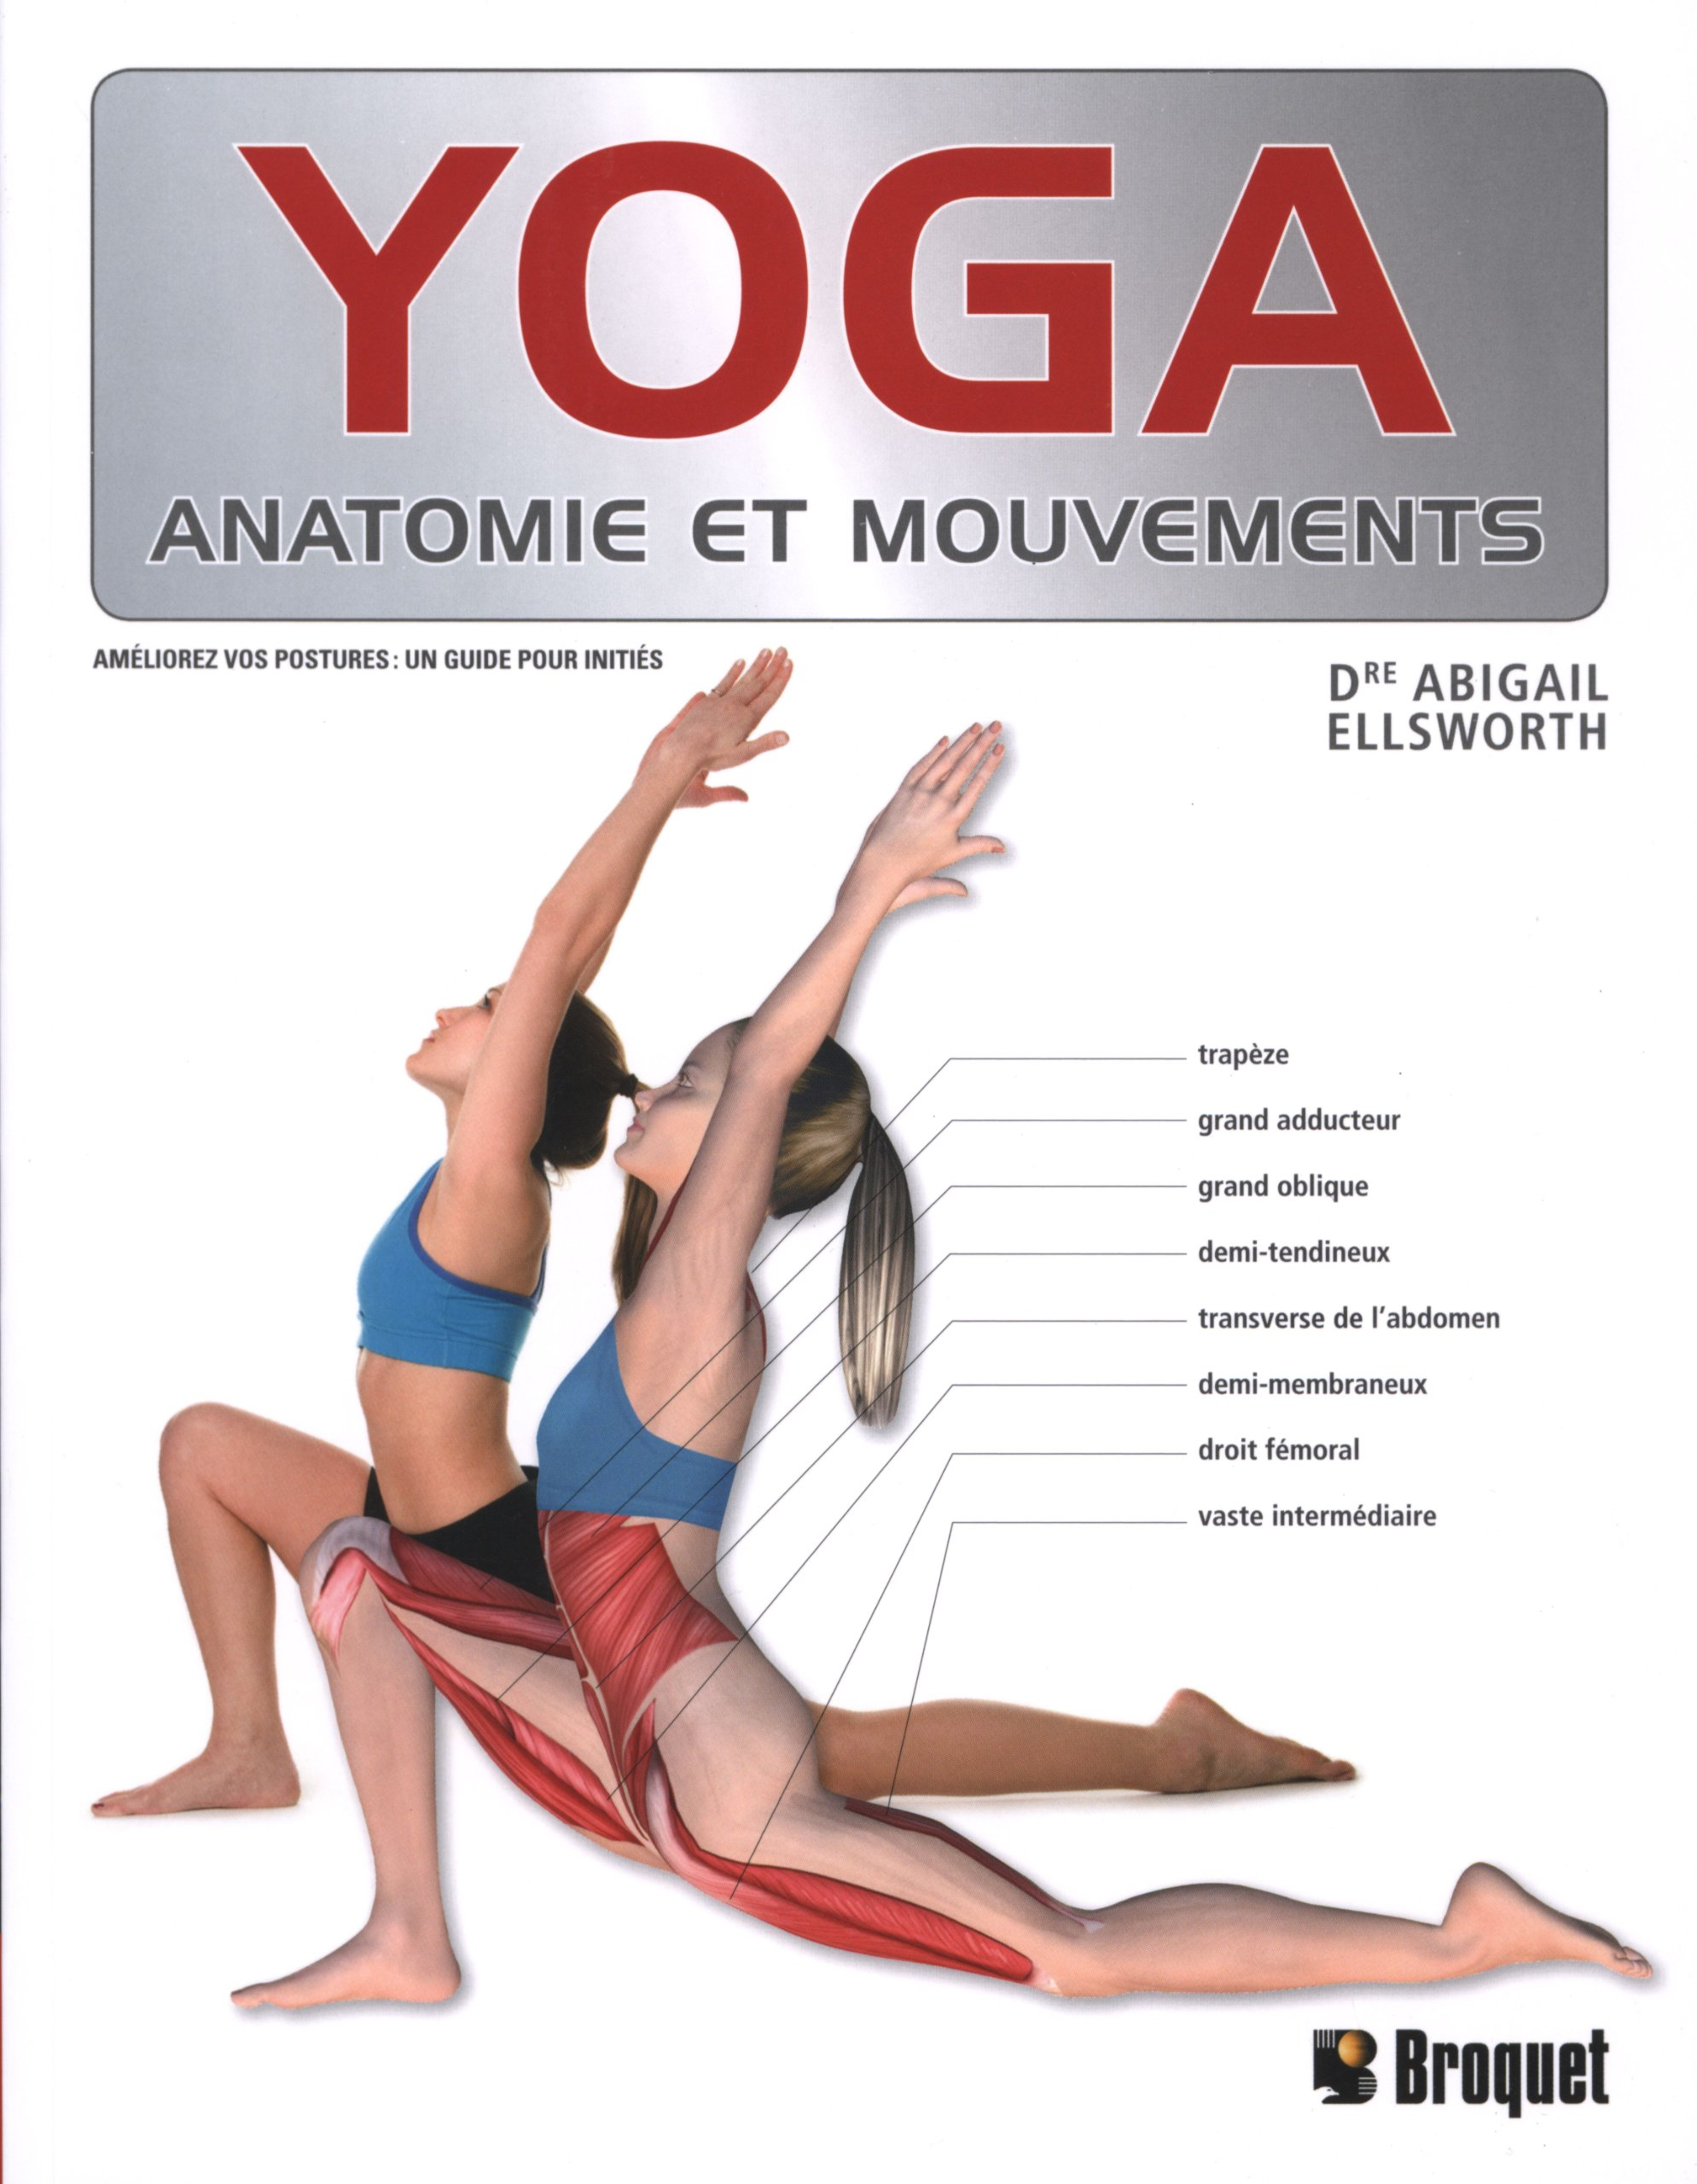 Yoga : anatomie et mouvements: Abby Ellsworth: 9782896542505: Amazon ...